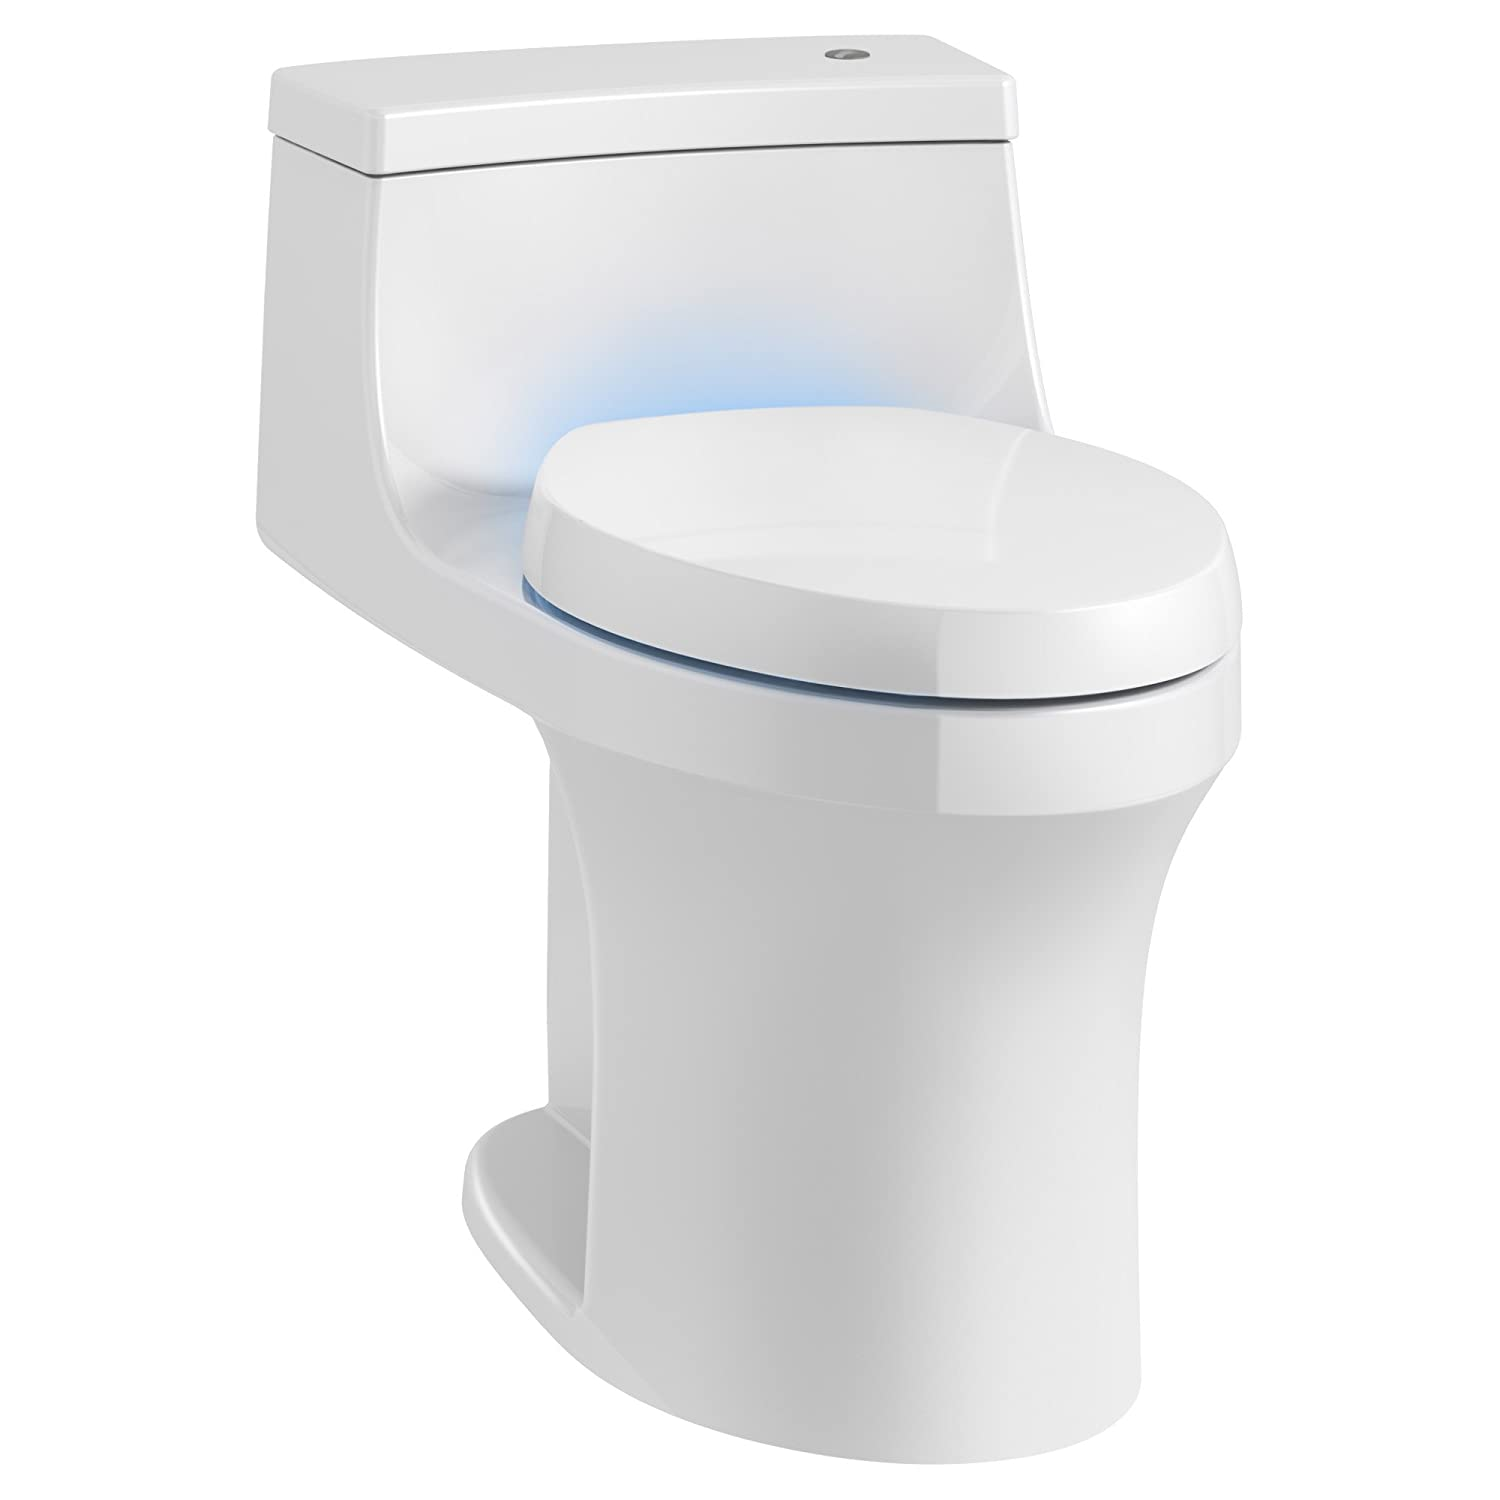 KOHLER K-8687-0 San Souci Touchless Comfort Height 1.28 Gpf Compact ...